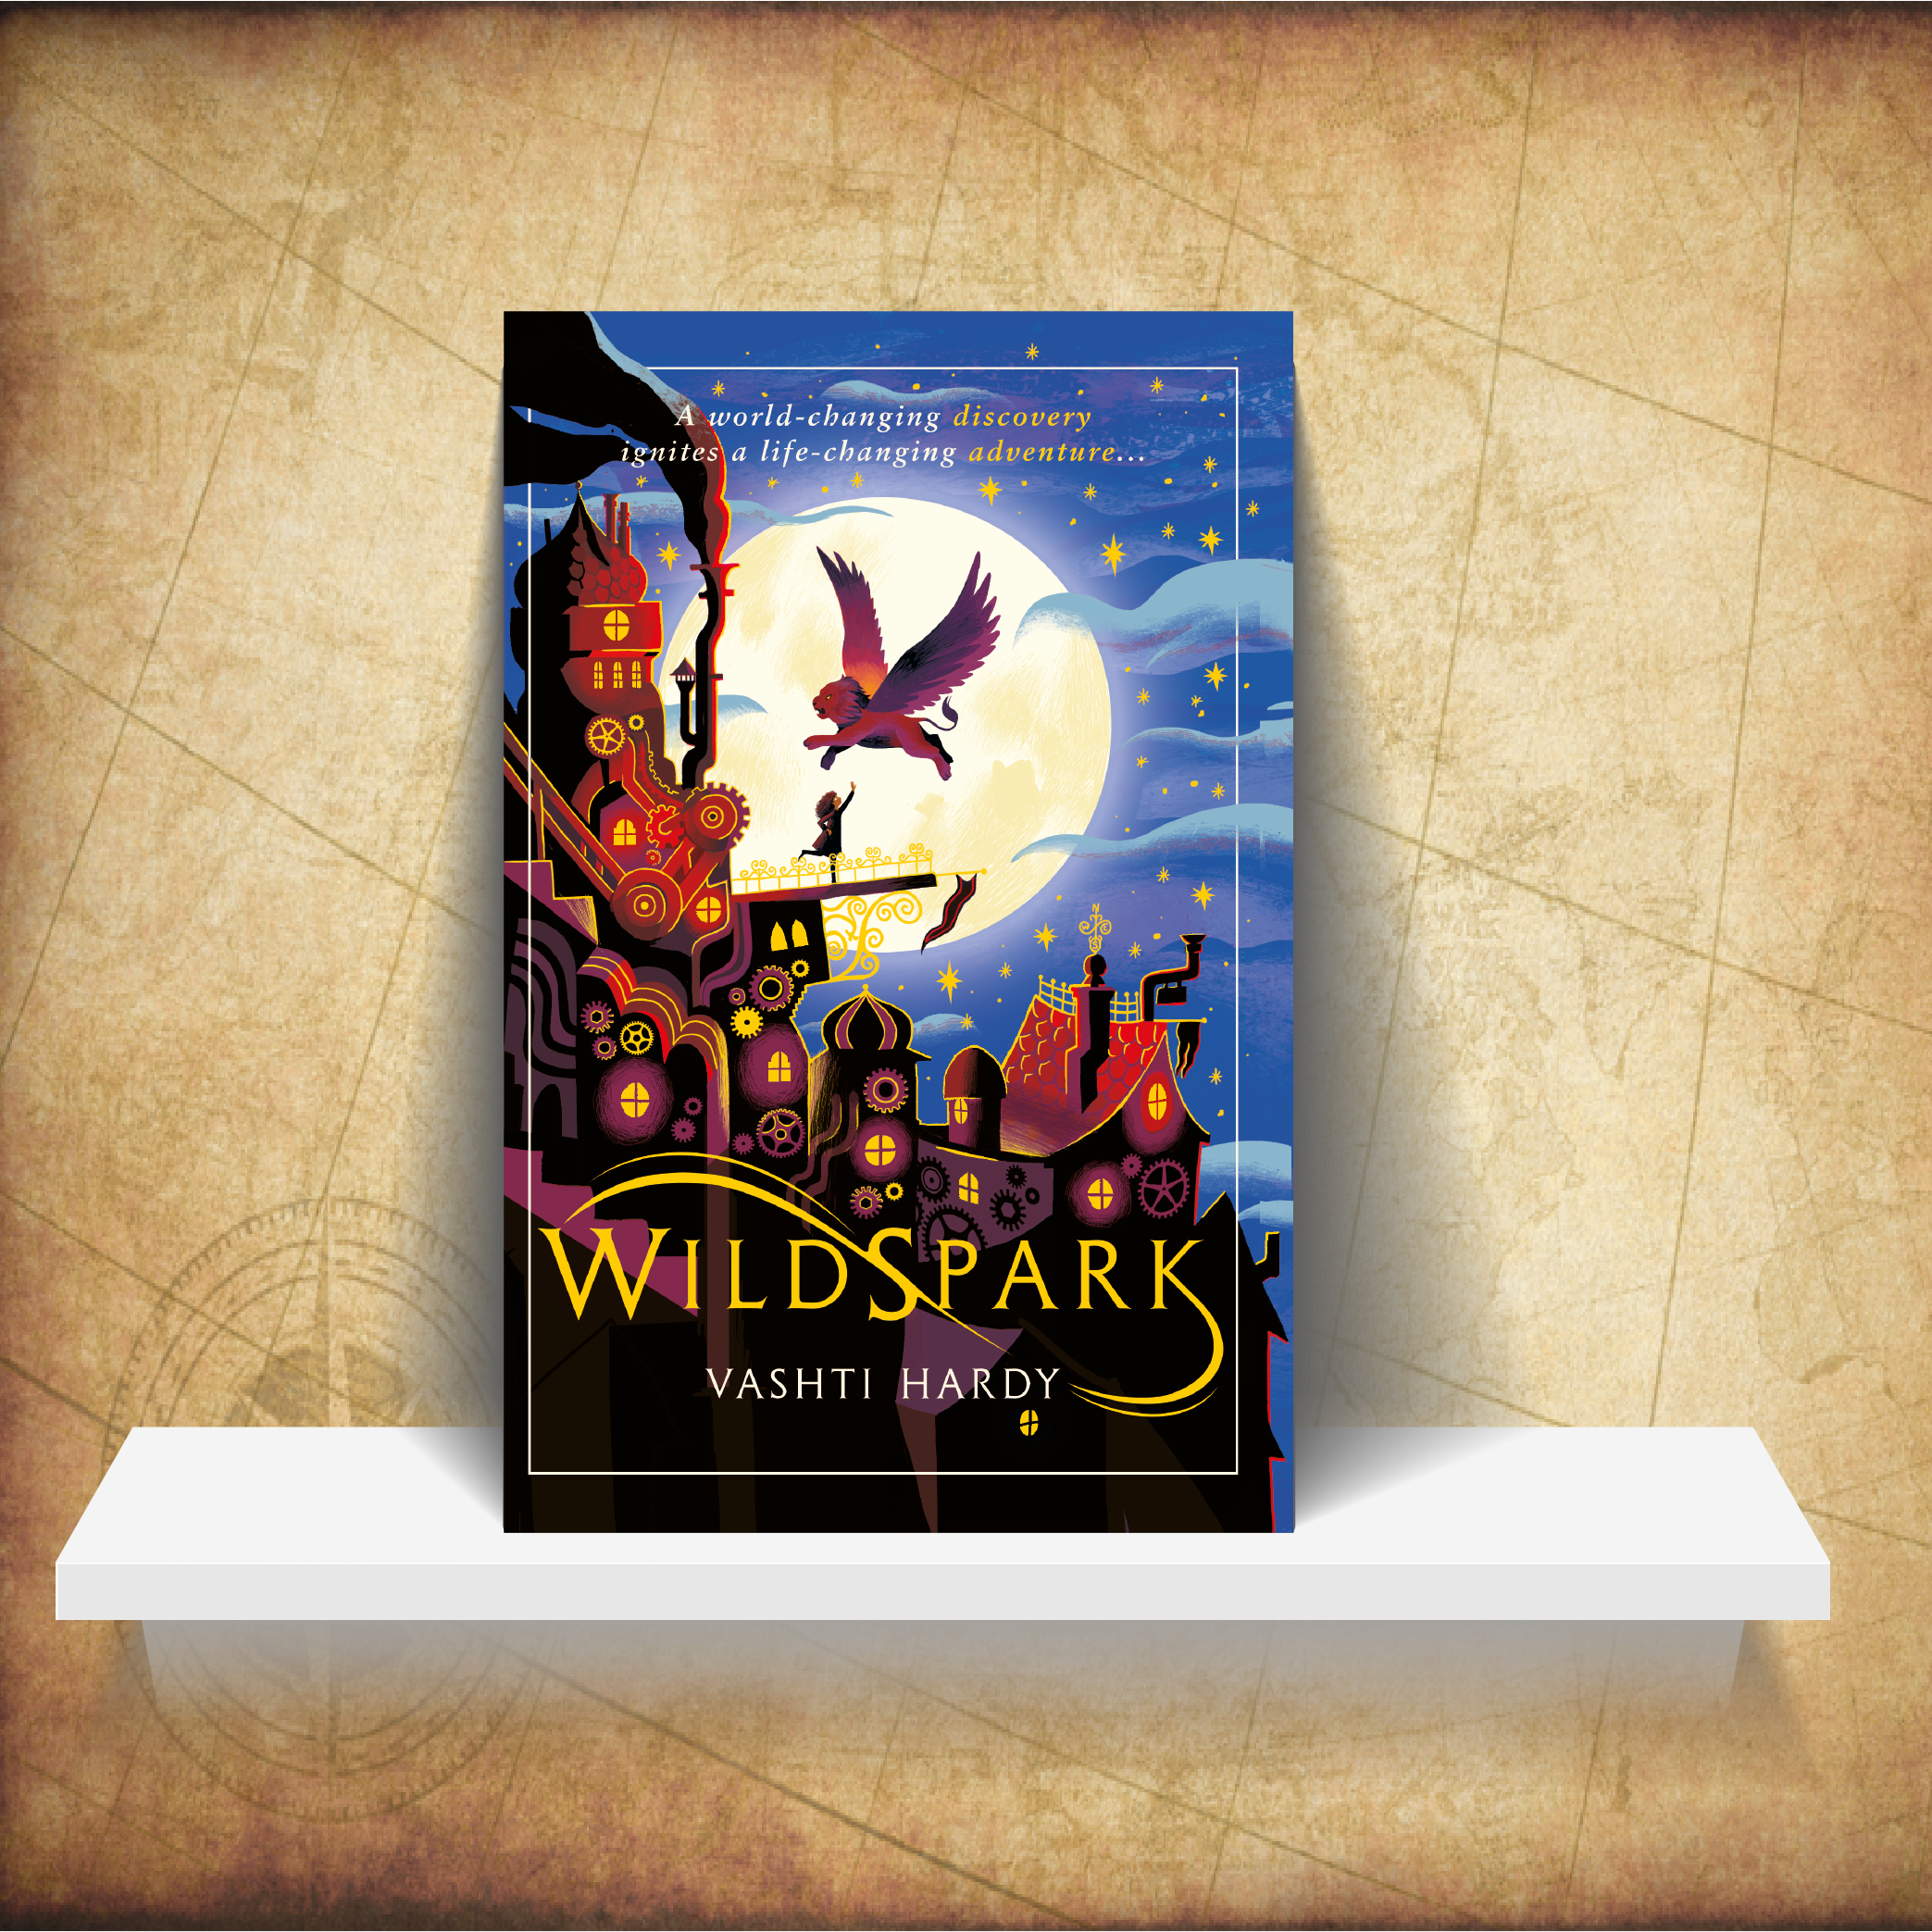 Wildspark - In Medlock, machines don't come to life – life comes to machines.A secretive guild of inventors have brought spirits of the dead back into the world, harnessing them in animal-like machines. Young Prue has joined as an apprentice, but she's on a mission of her own: to bring her brother back to life. To find him, she needs to get the ghost machines to remember the people they used to be…